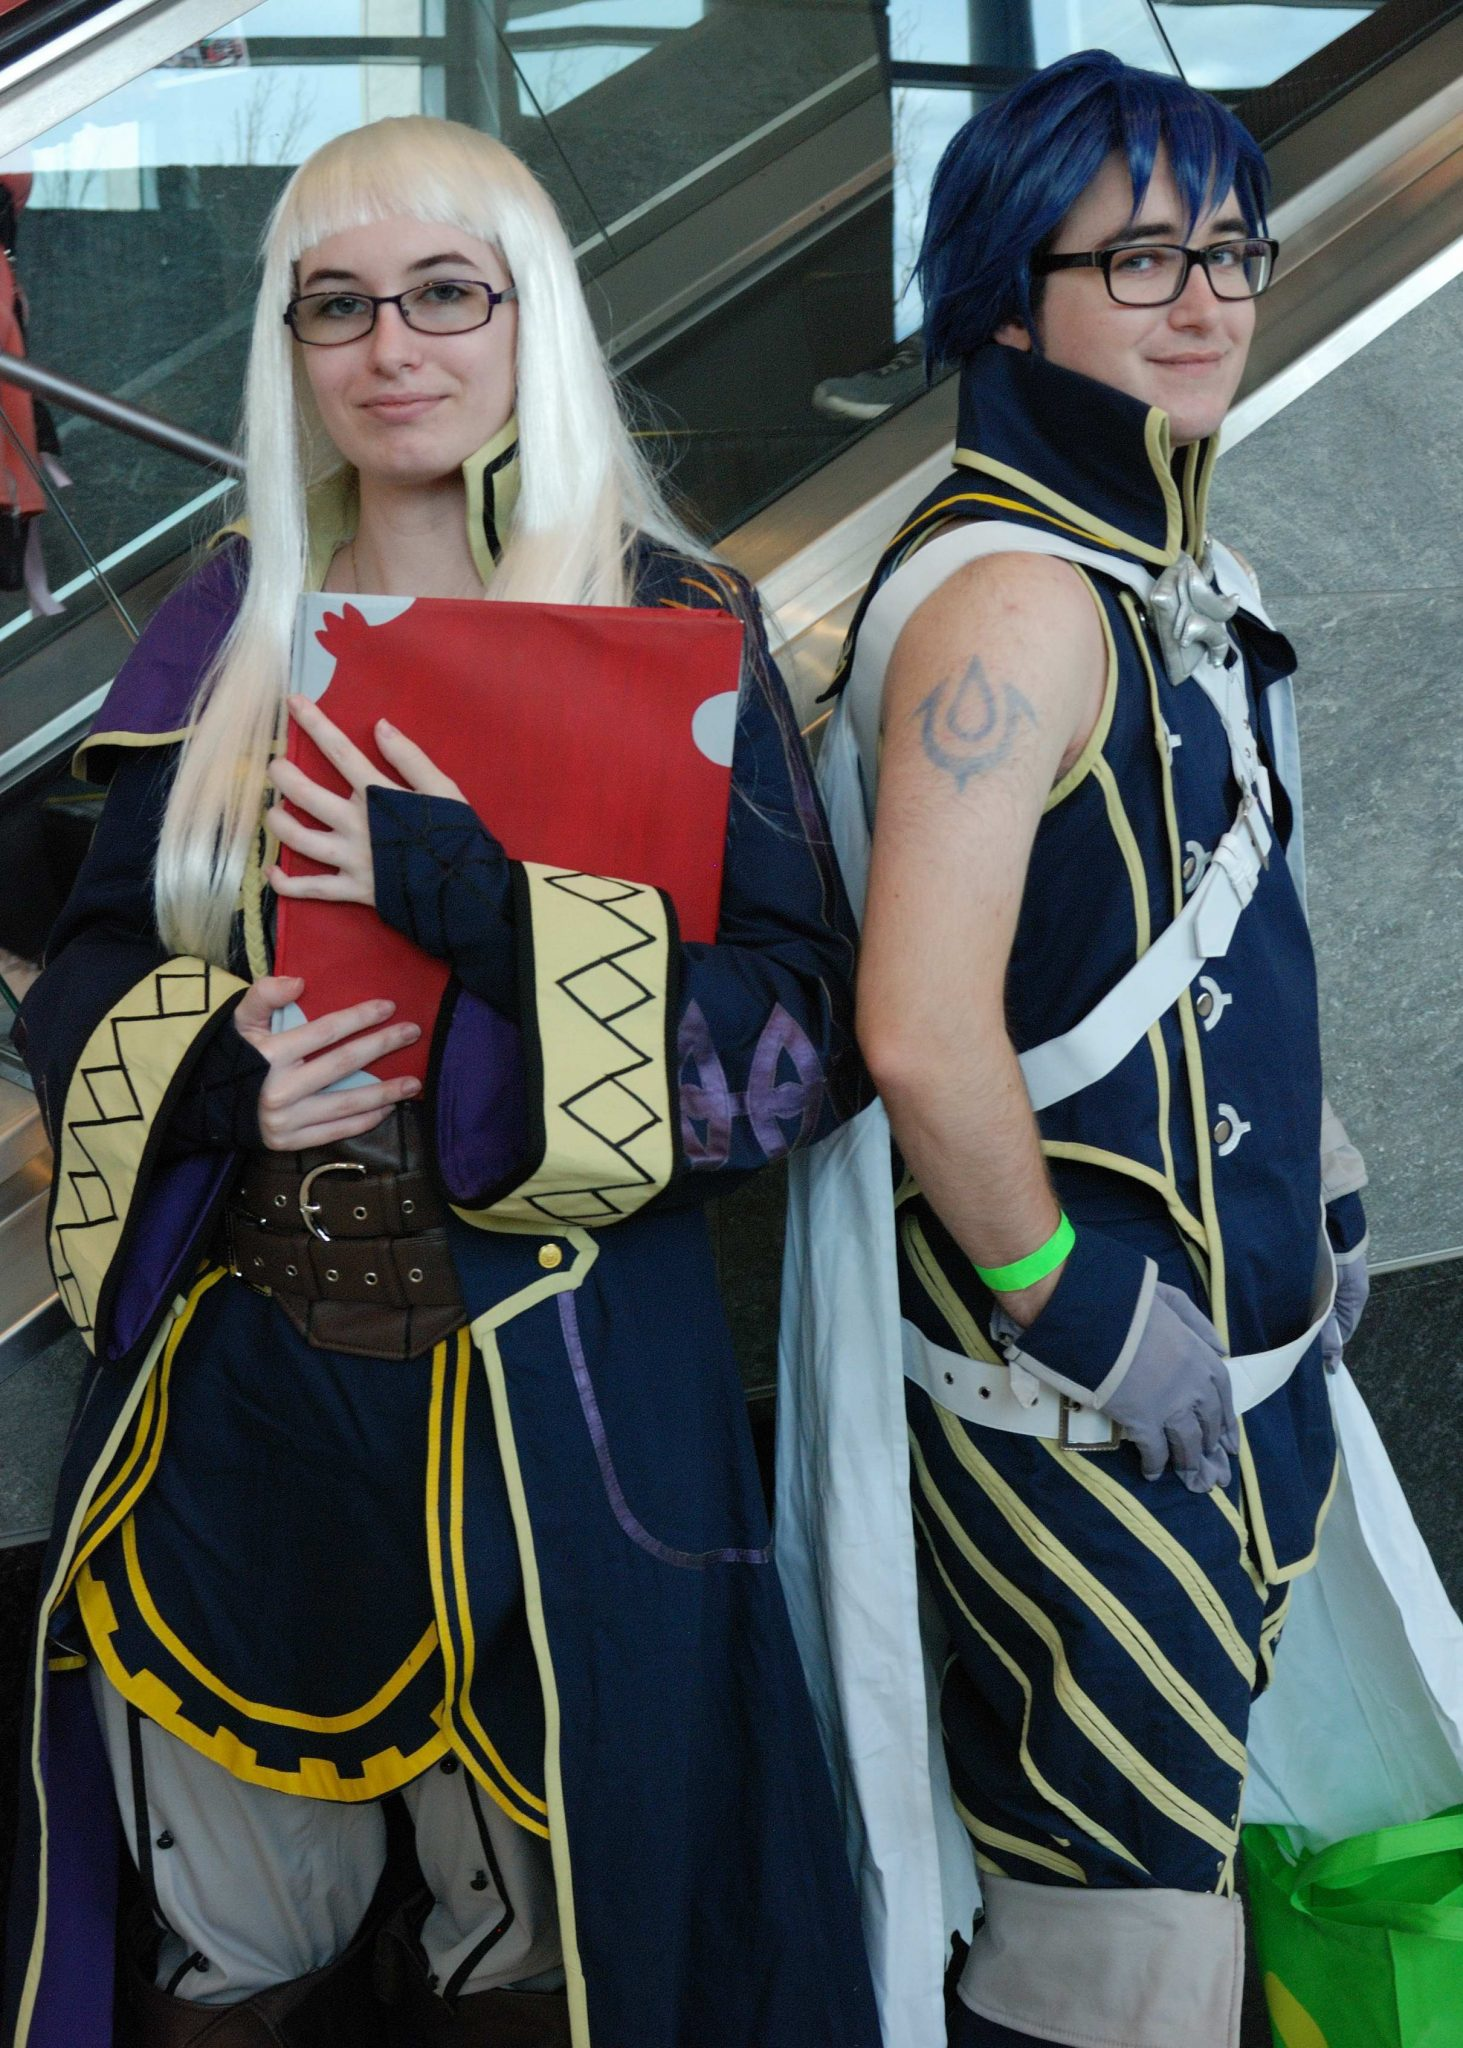 Forest City Comicon 2018. Tameica Buck and Lawrence Buck cosplaying as Robin and Chrom from Fire Emblem at Forest City Comicon in London, Ontario.